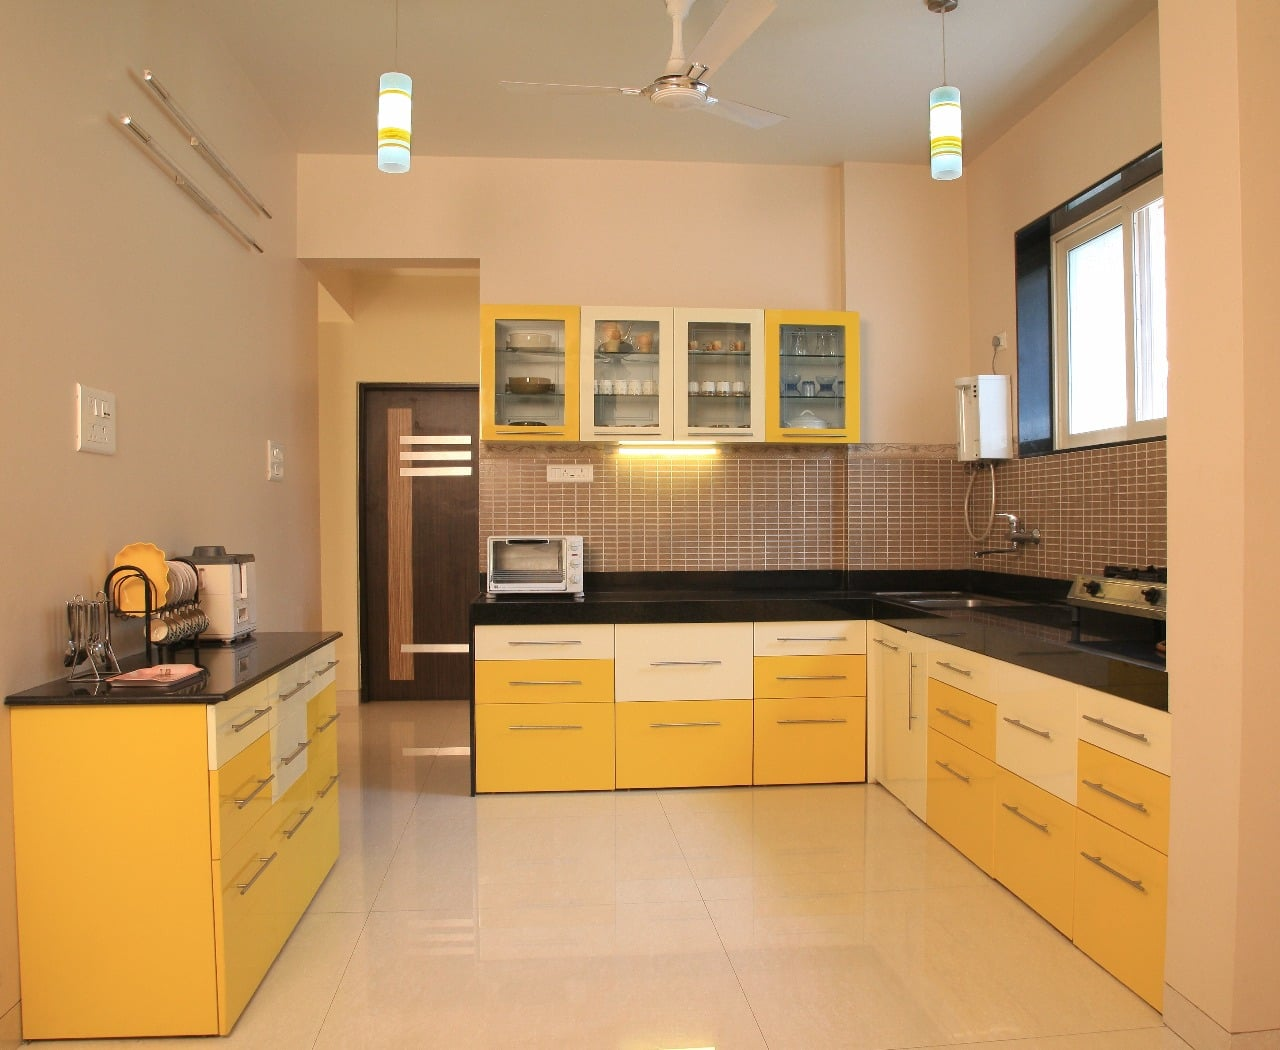 Yellow Modular Kitchen by Intrusa Interiors  Modular-kitchen Contemporary | Interior Design Photos & Ideas